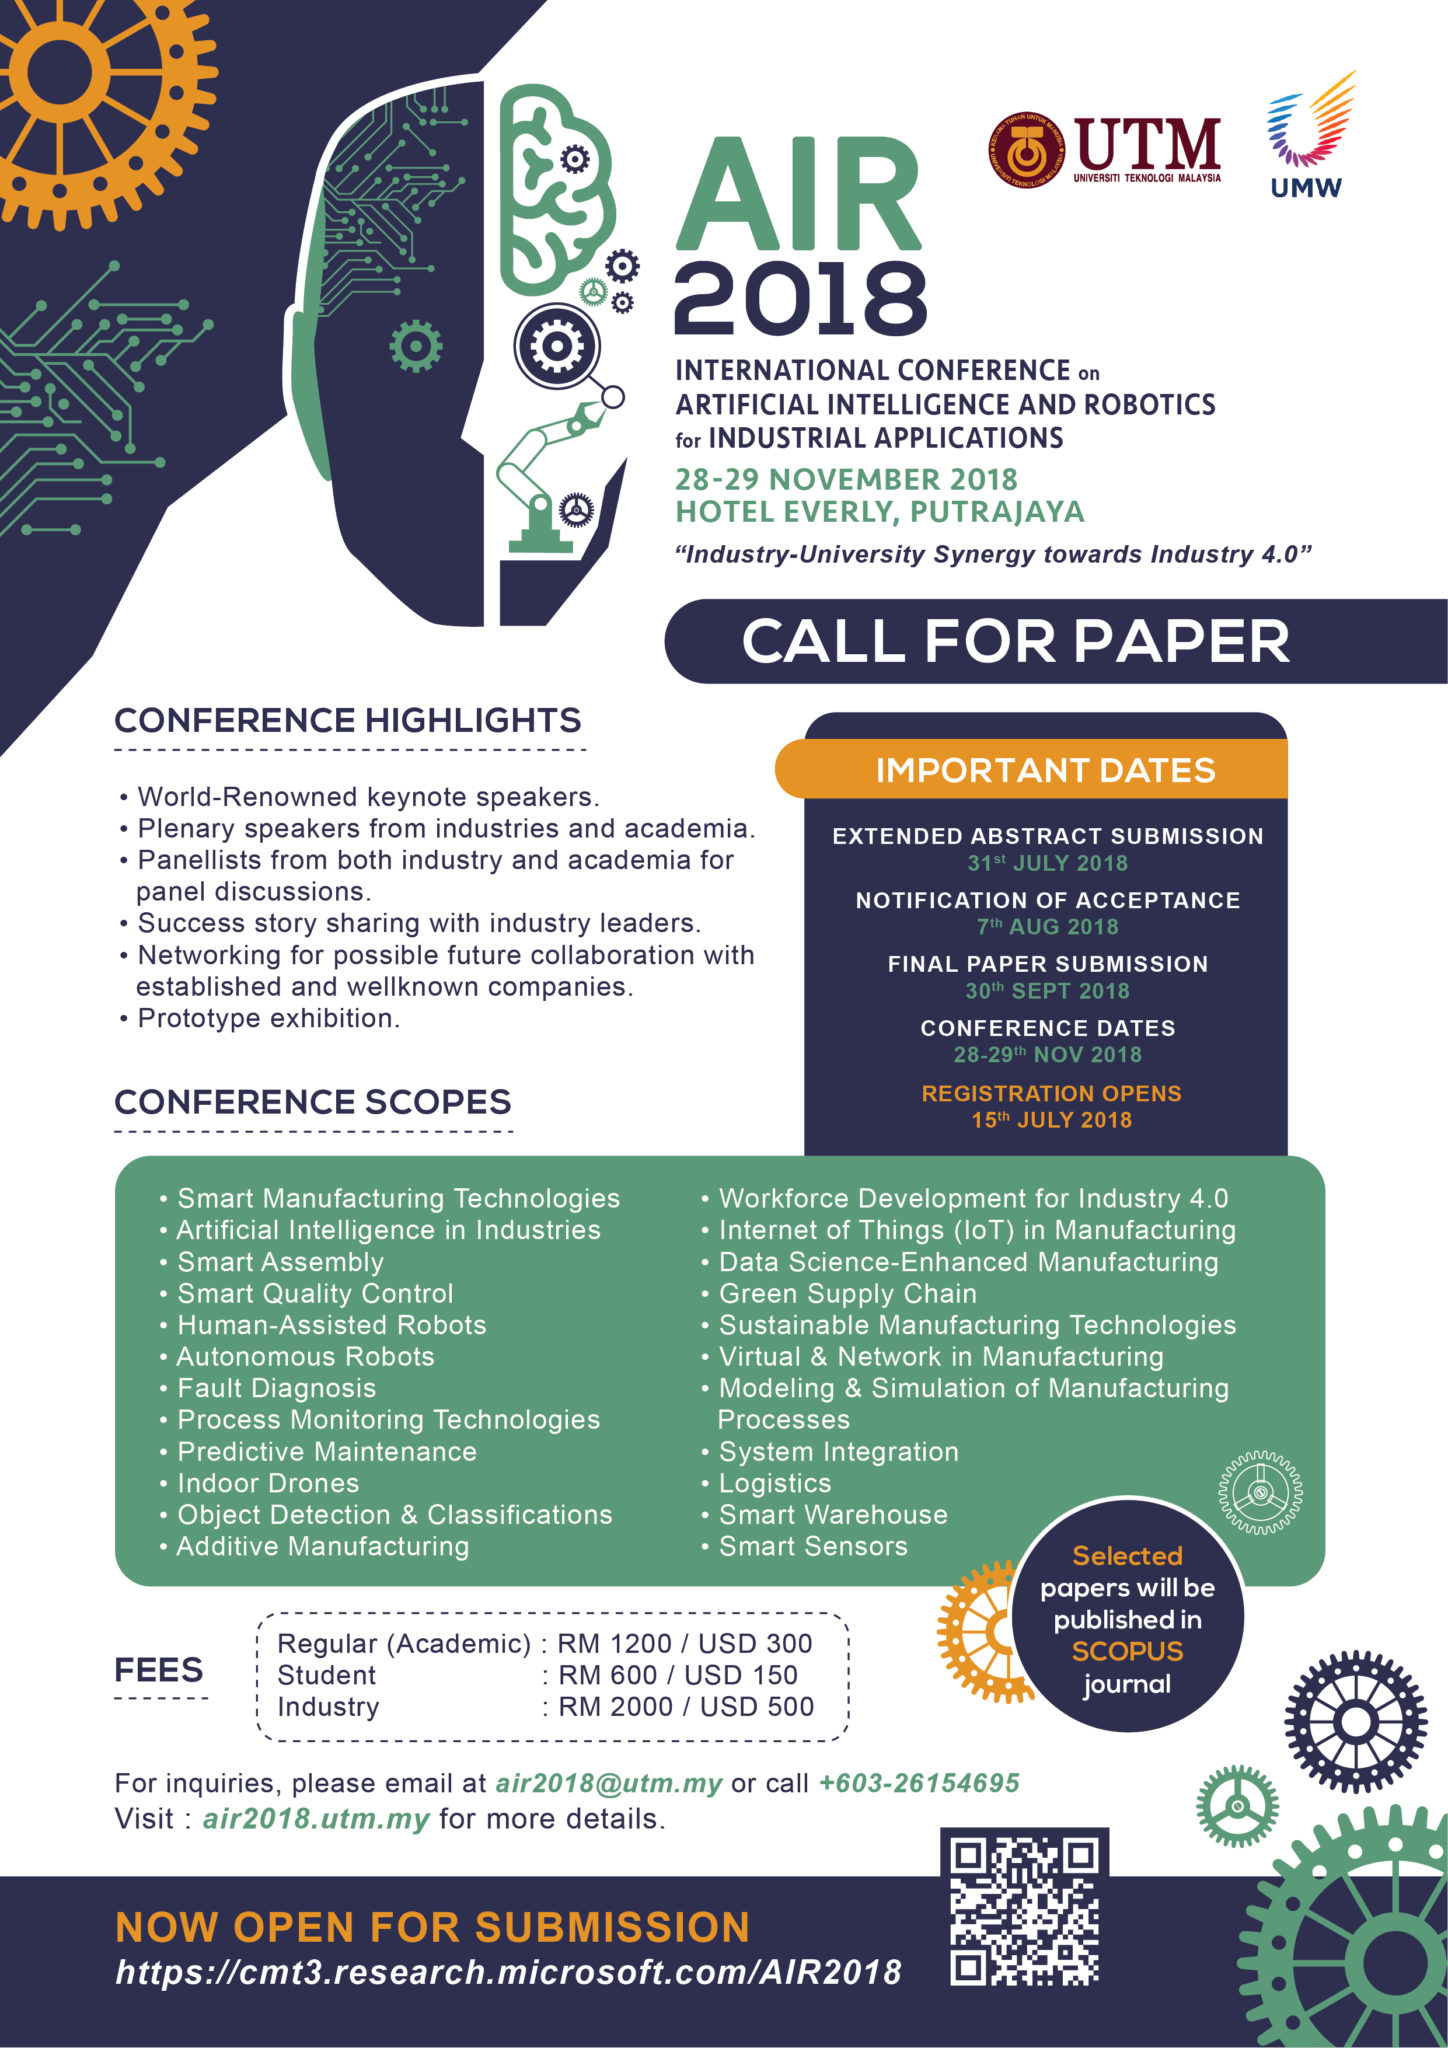 Call for Papers – International Conference on Artificial Intelligence and Robotics for Industrial Applications (AIR2018)